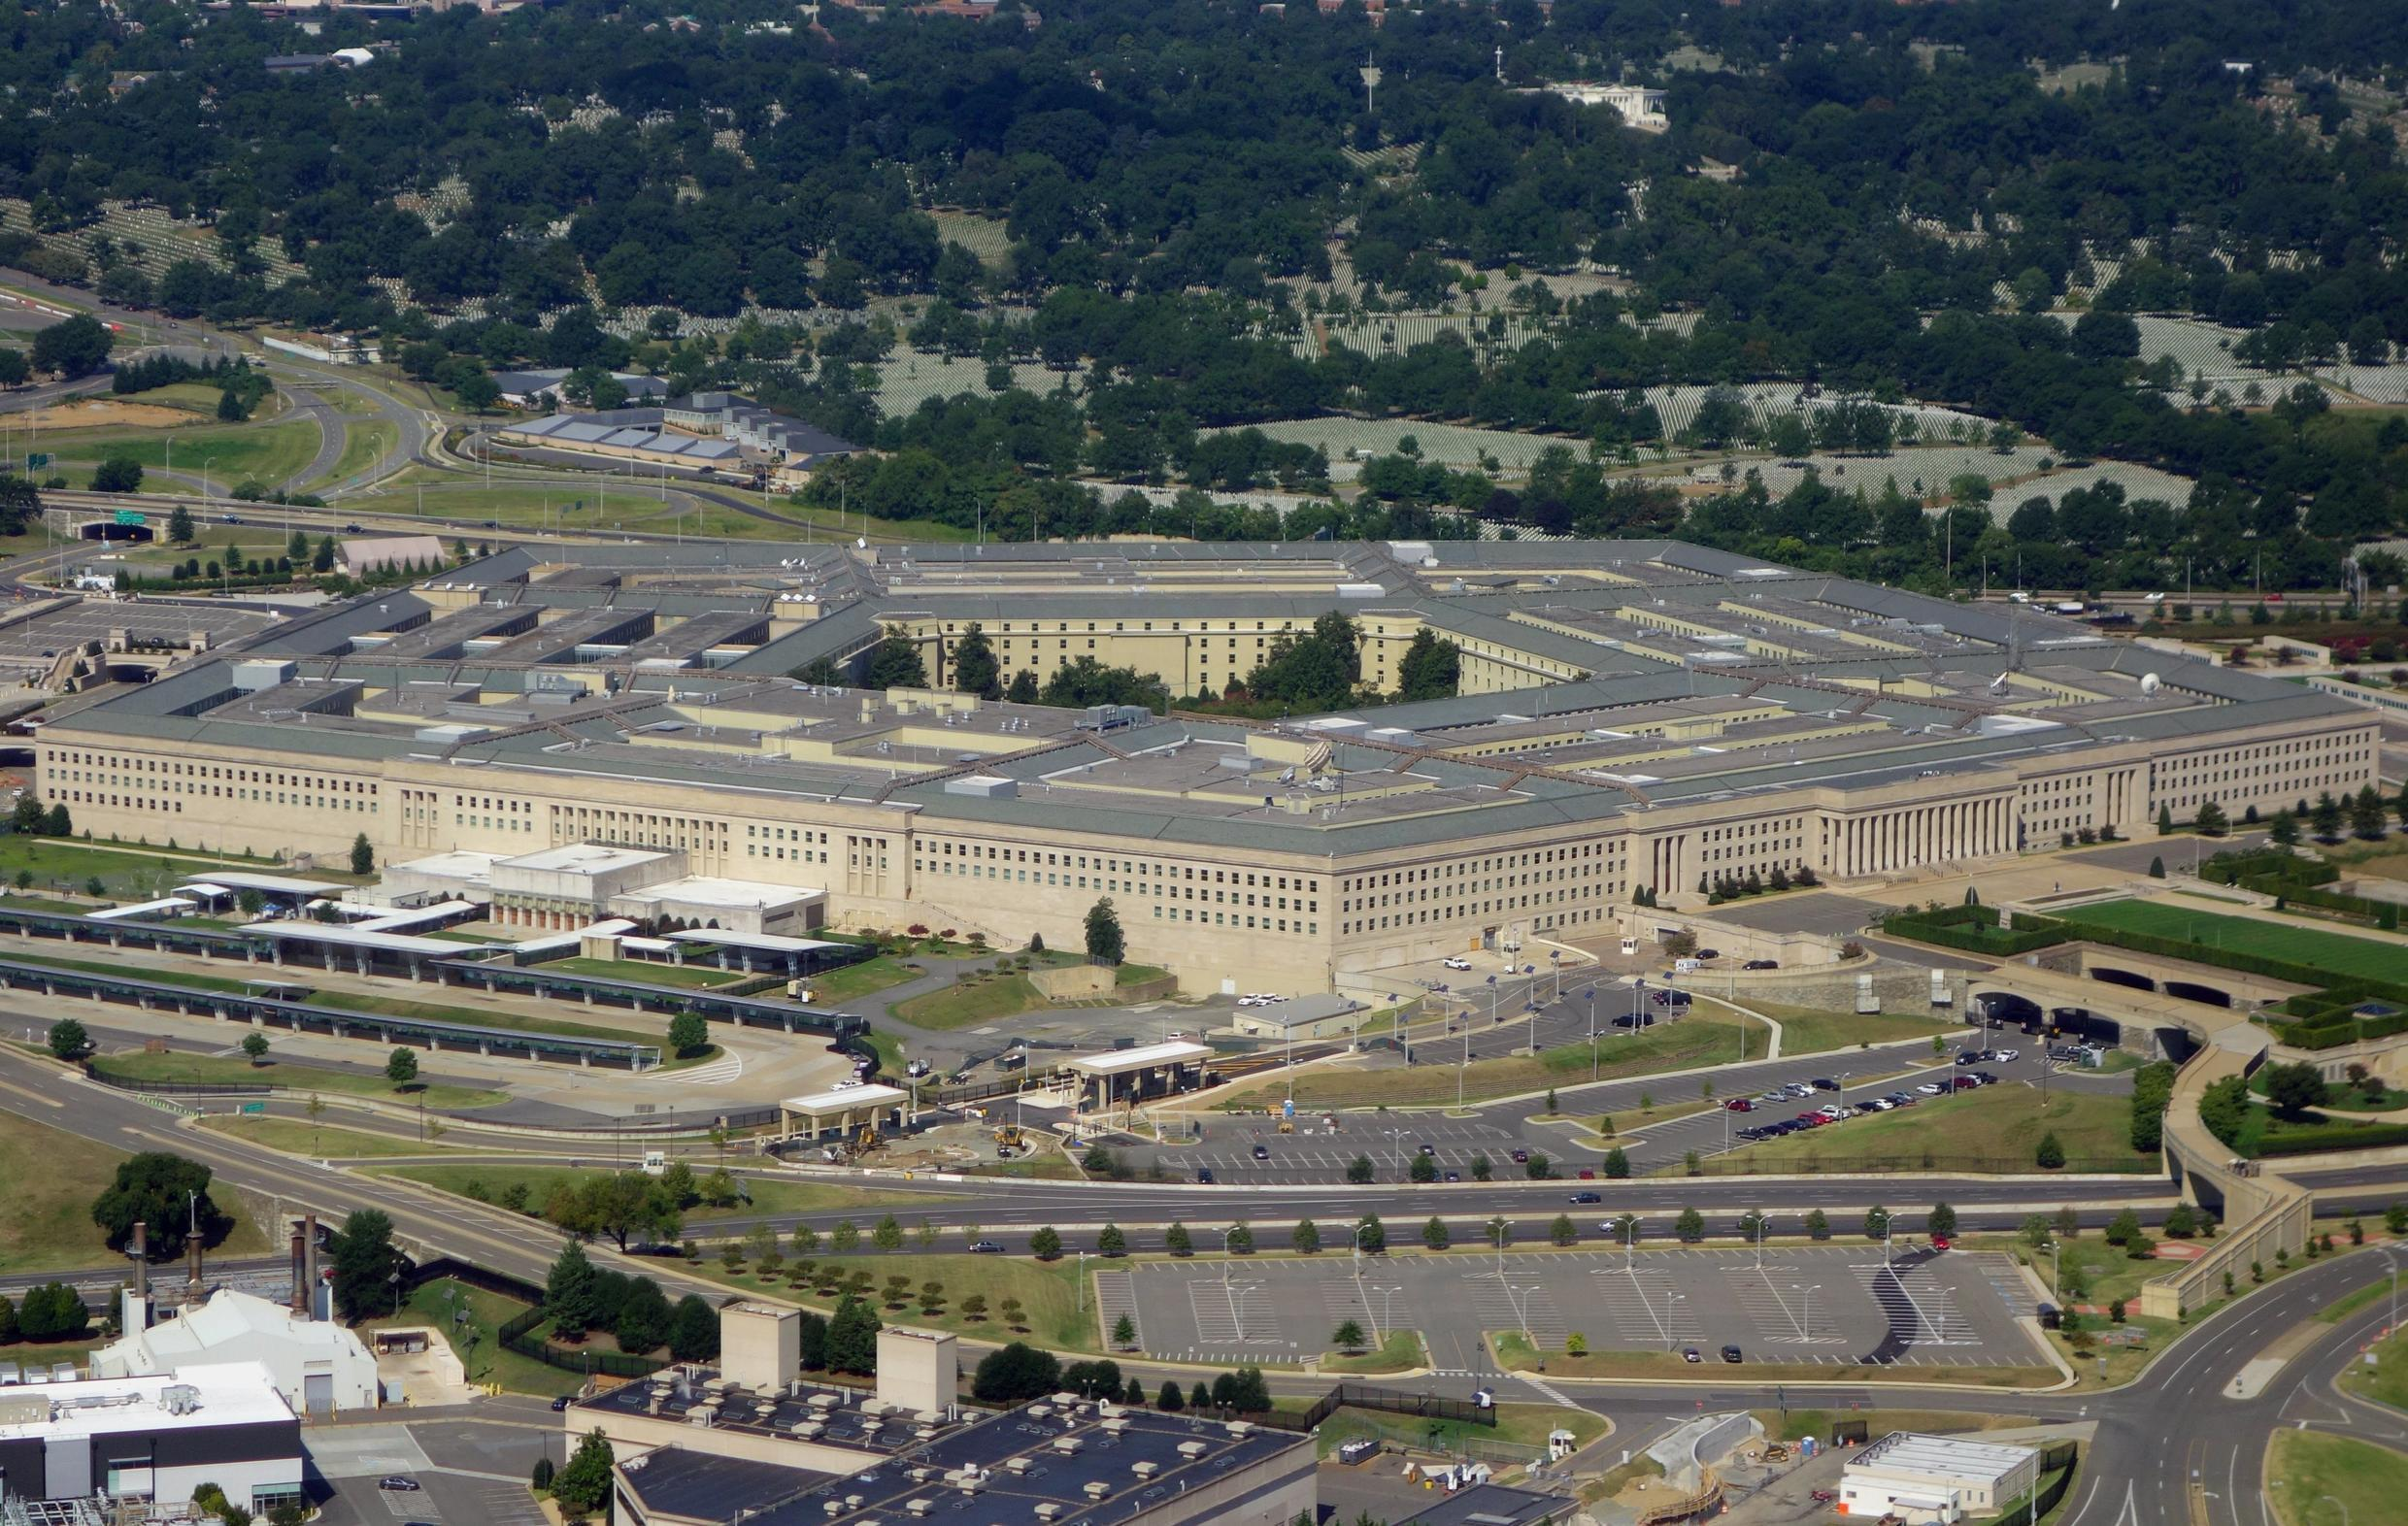 The Pentagon, pictured here from the air over Washington, DC in 2013, says it has successfully tested an unarmed prototype of a hypersonic missile, a potential game changer in modern warfare The US Defense Department announced on March 20, 2020, it has successfully tested an unarmed hypersonic missile, a weapon that could potentially overwhelm an adversary's defense systems. The Pentagon said a test missile flew at hypersonic speeds -- more than five times the speed of sound, or Mach 5 -- to a designated impact point.